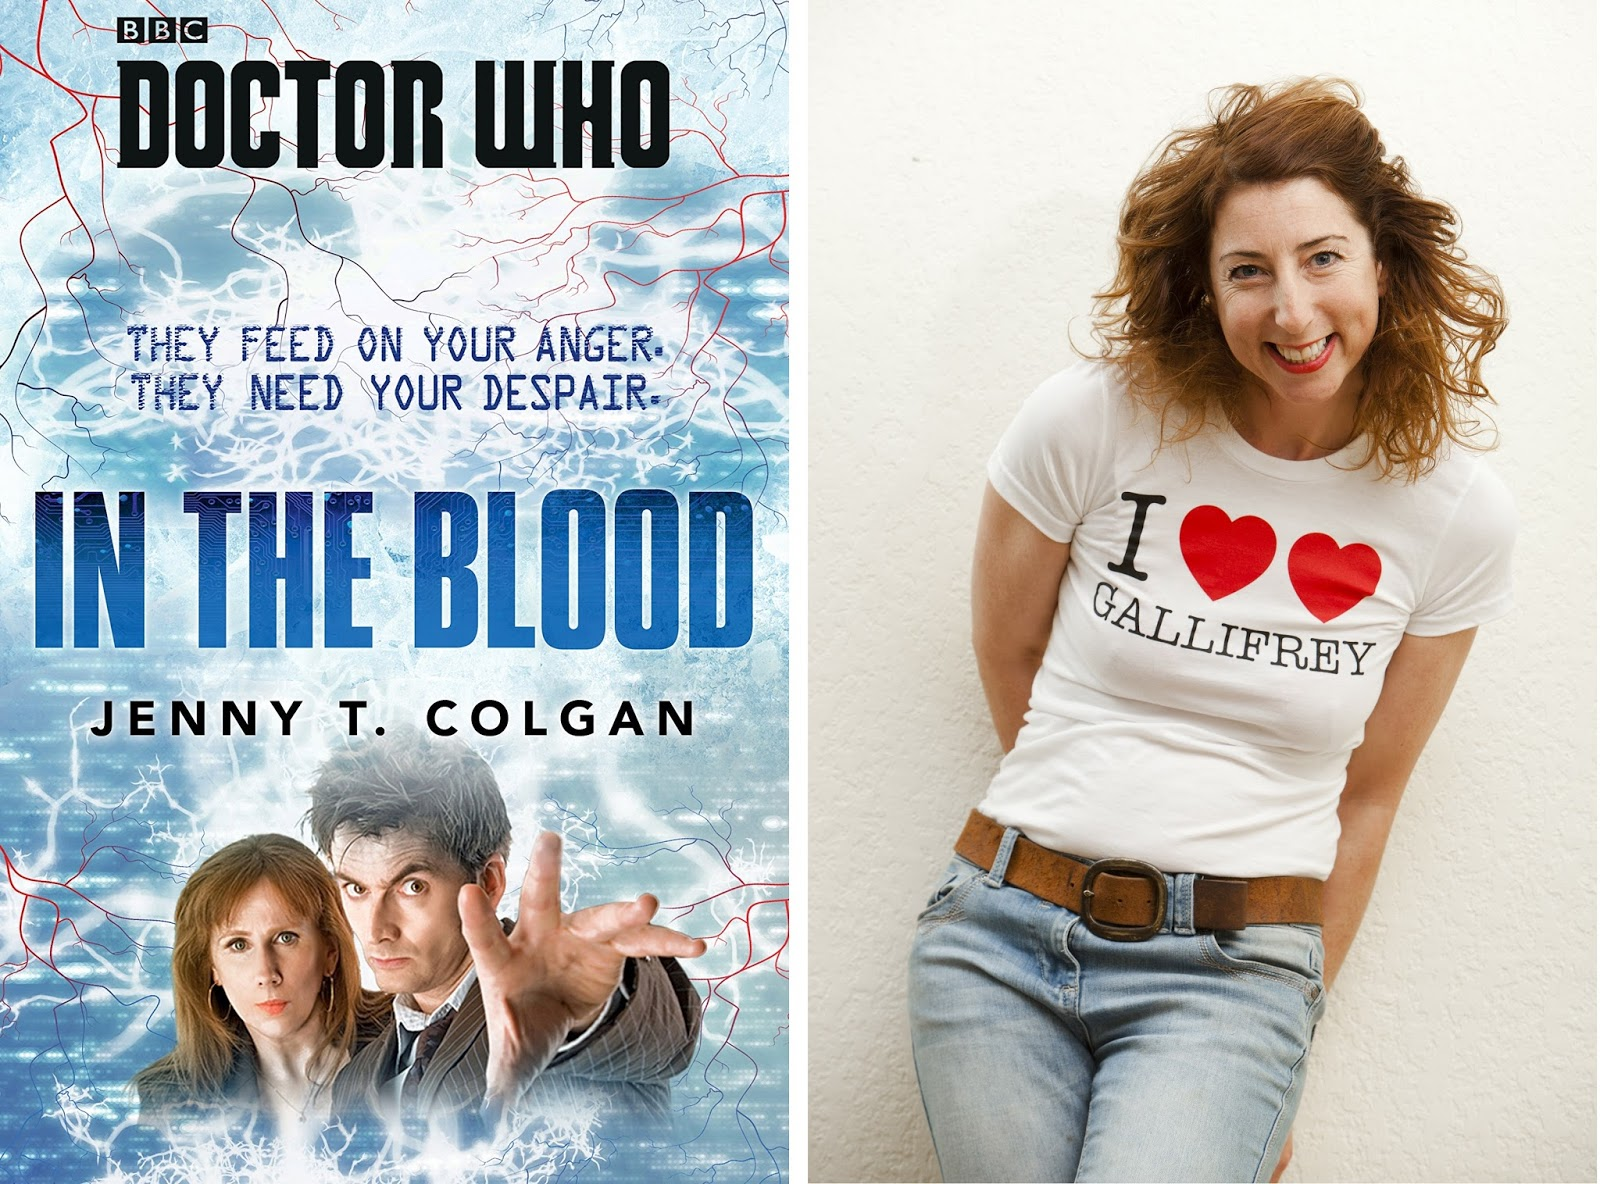 interview doctor who writer jenny colgan answers your questions interview doctor who writer jenny colgan answers your questions